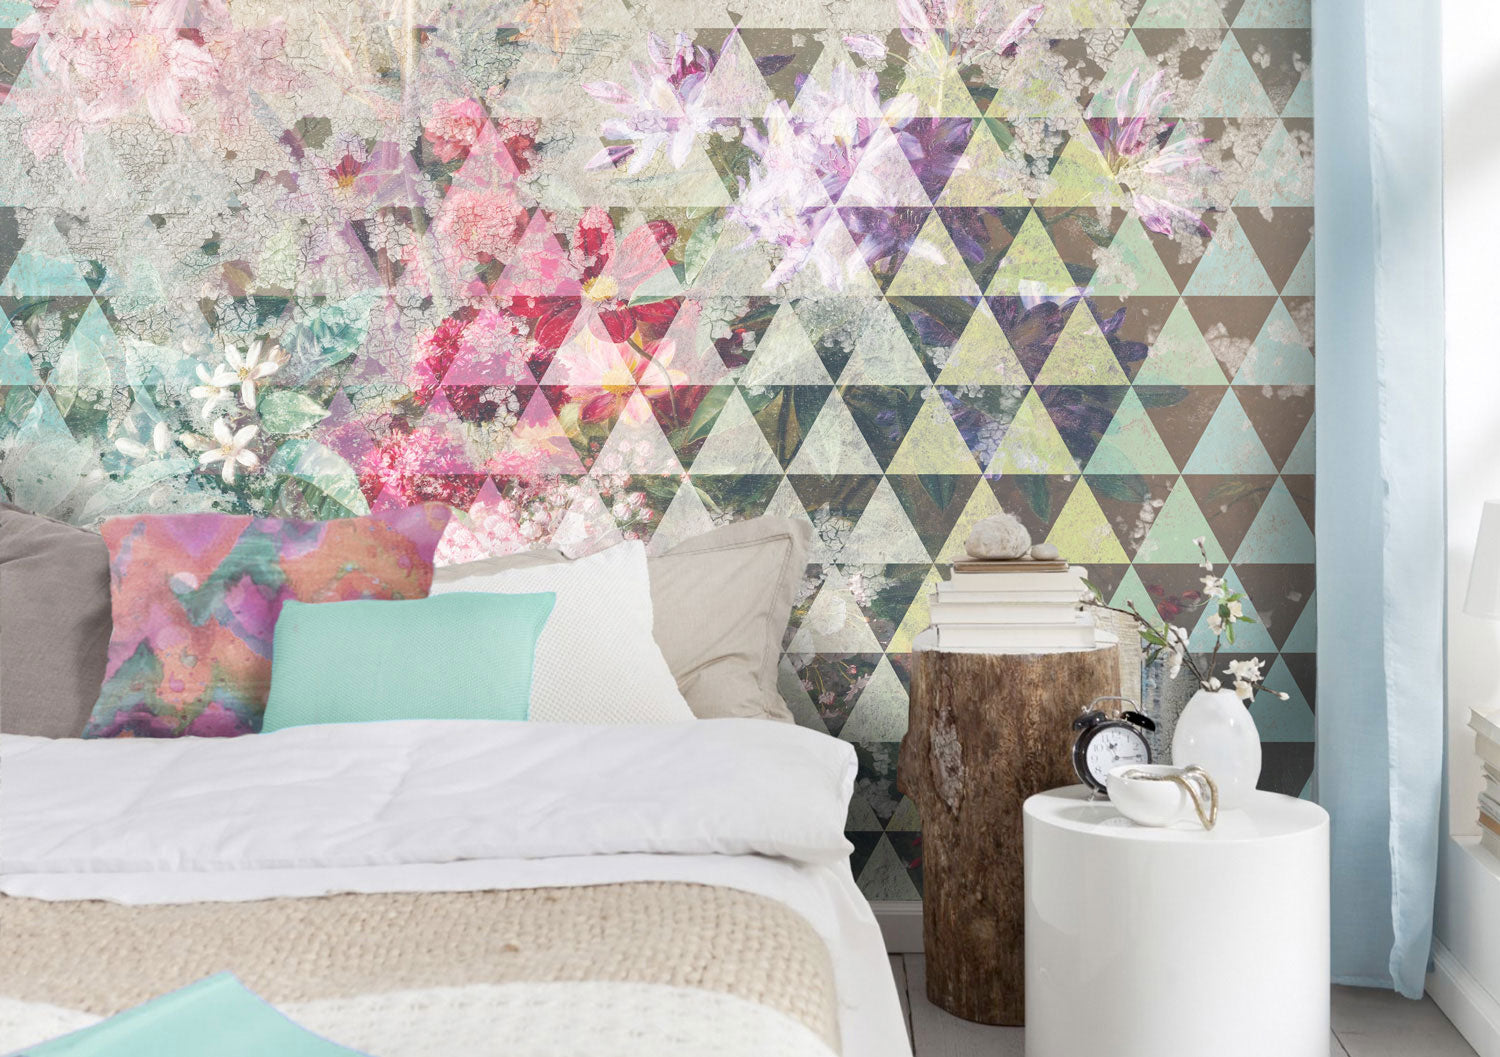 Tri Floral Geometric Wall Mural by Back to the Wall